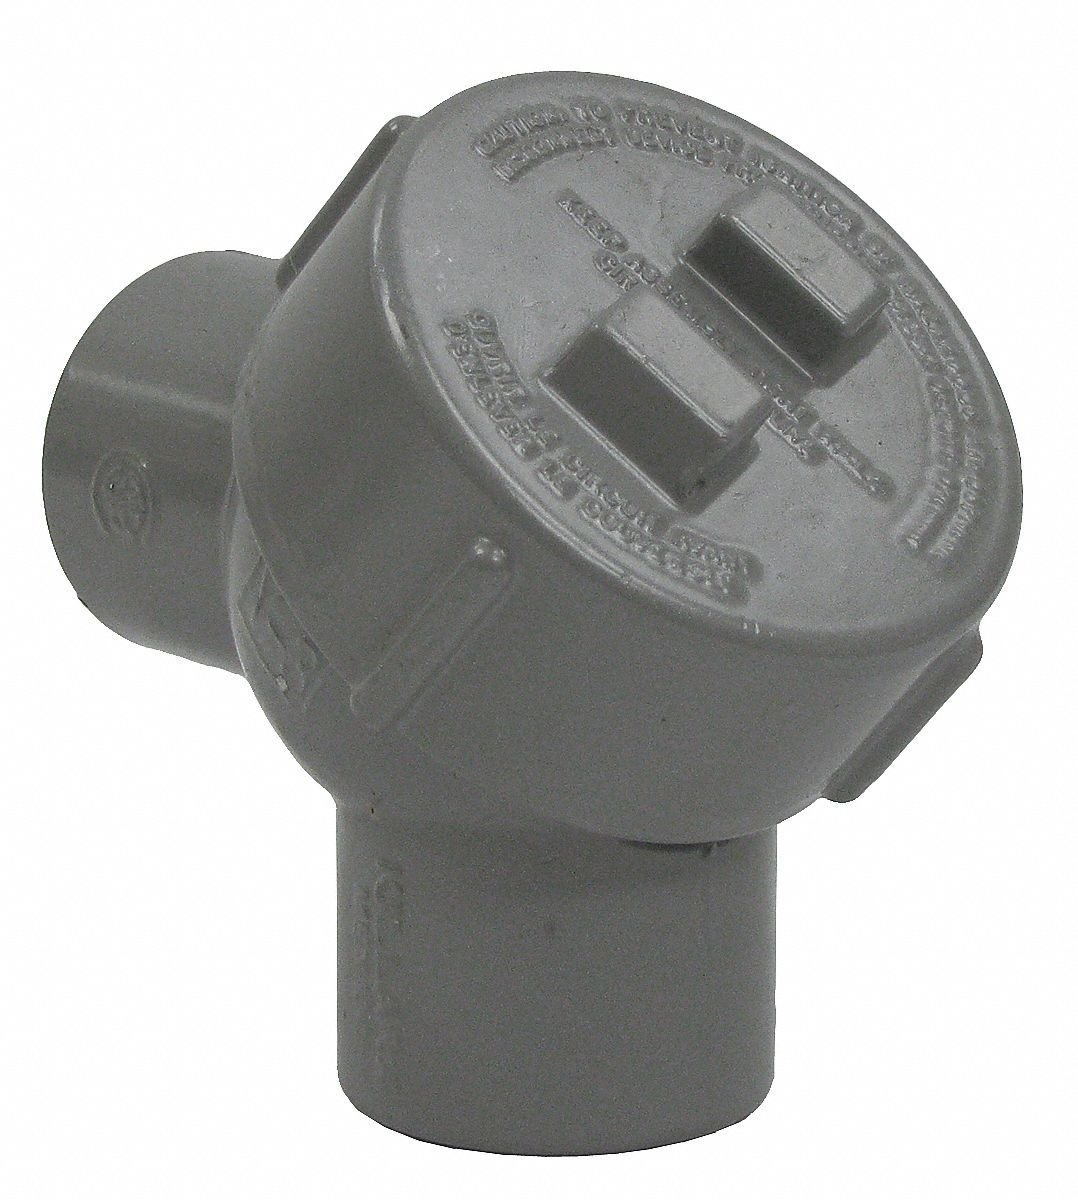 Capped Elbow, 90°, Aluminum, Female to Female Connection, 1/2'' Conduit Size